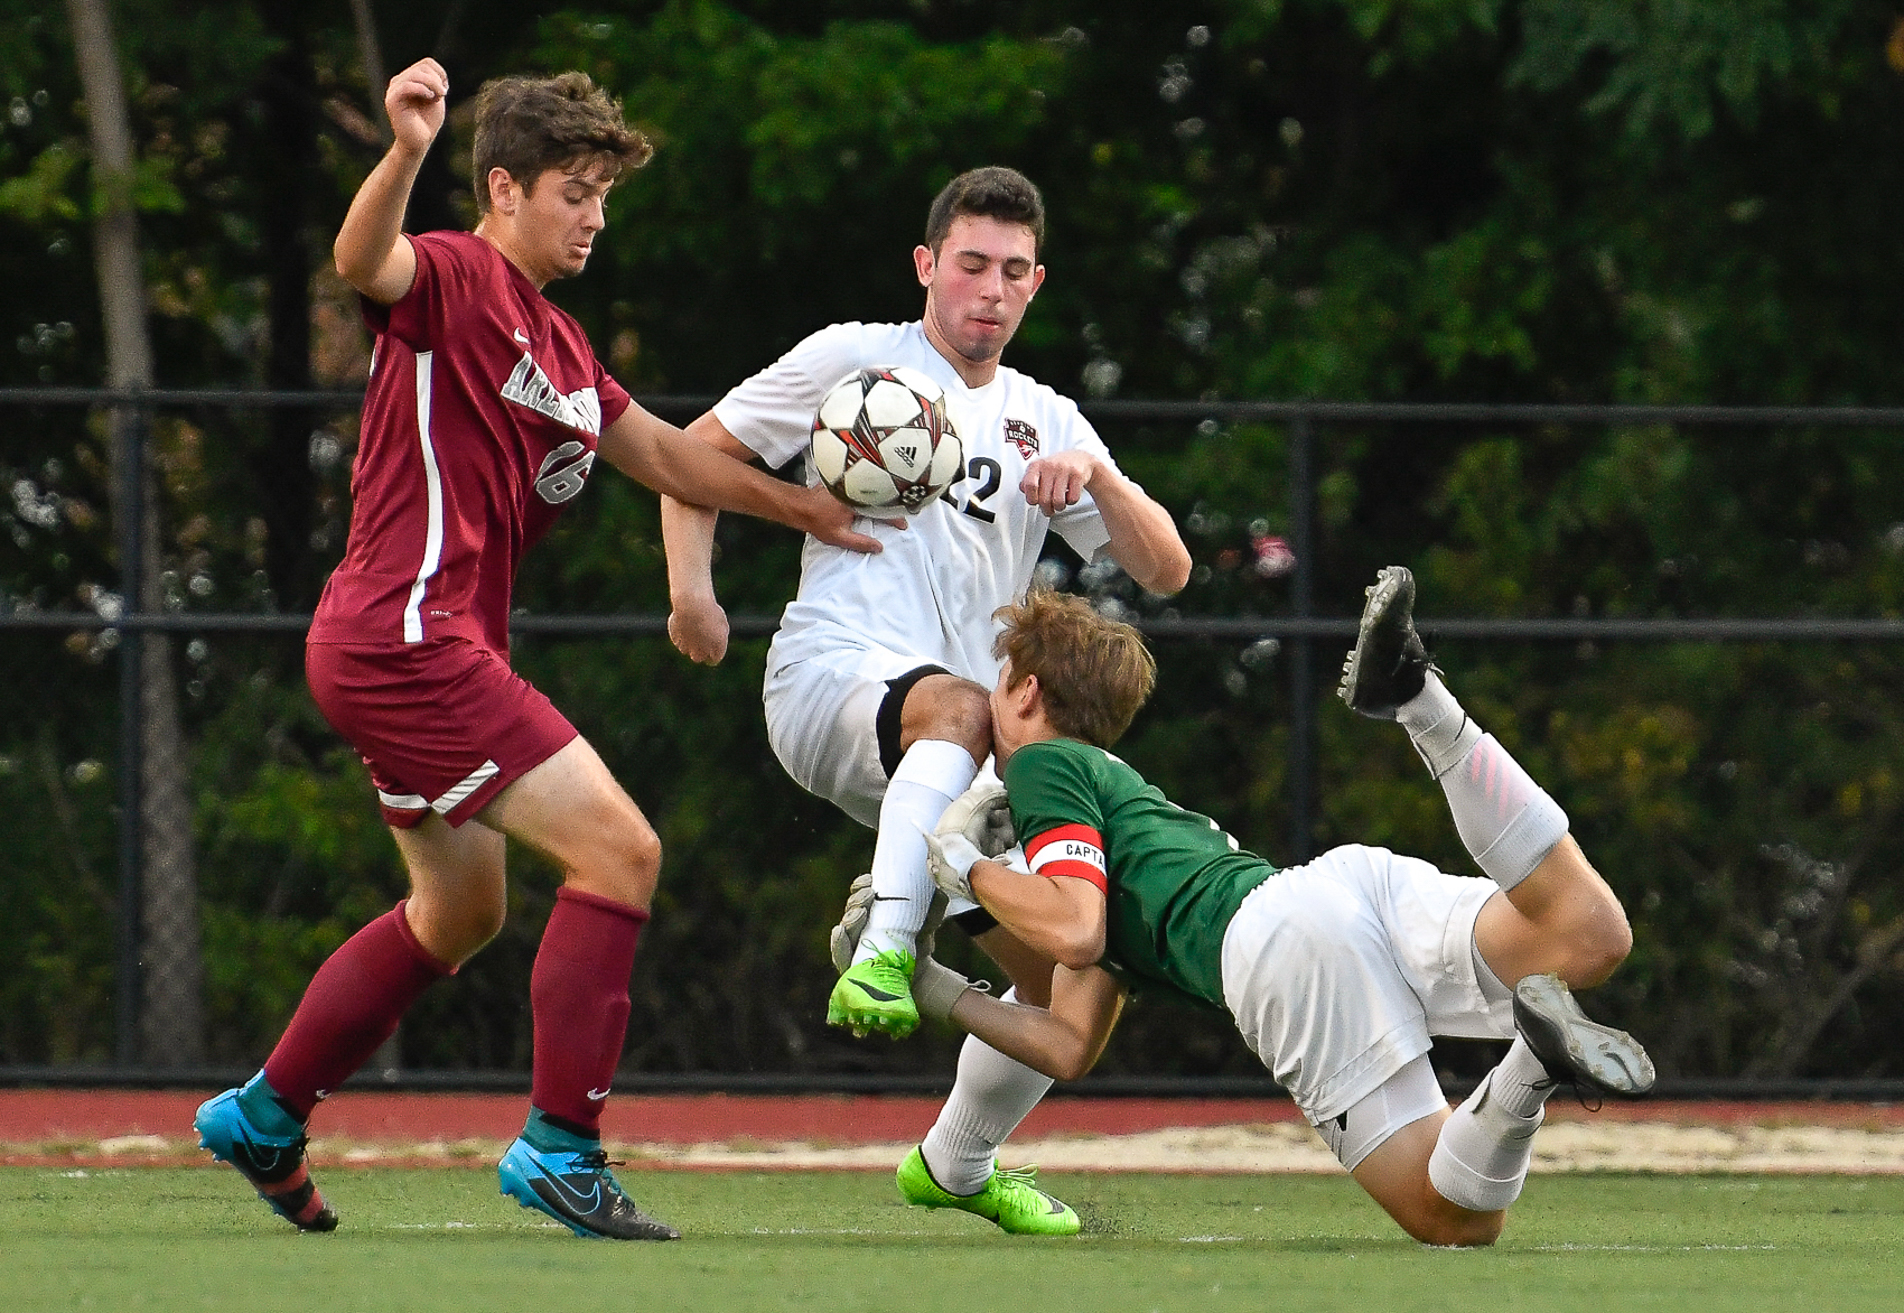 Dustin Rosh, center, of Reading, accidentally knees his goalkeeper Alex Katsoufis in the face while being pressured for the ball by Will Clifford of Arlington during their game at Reading High School, Thursday, Sept. 14, 2017. [Wicked Local Staff Photo / David Sokol]